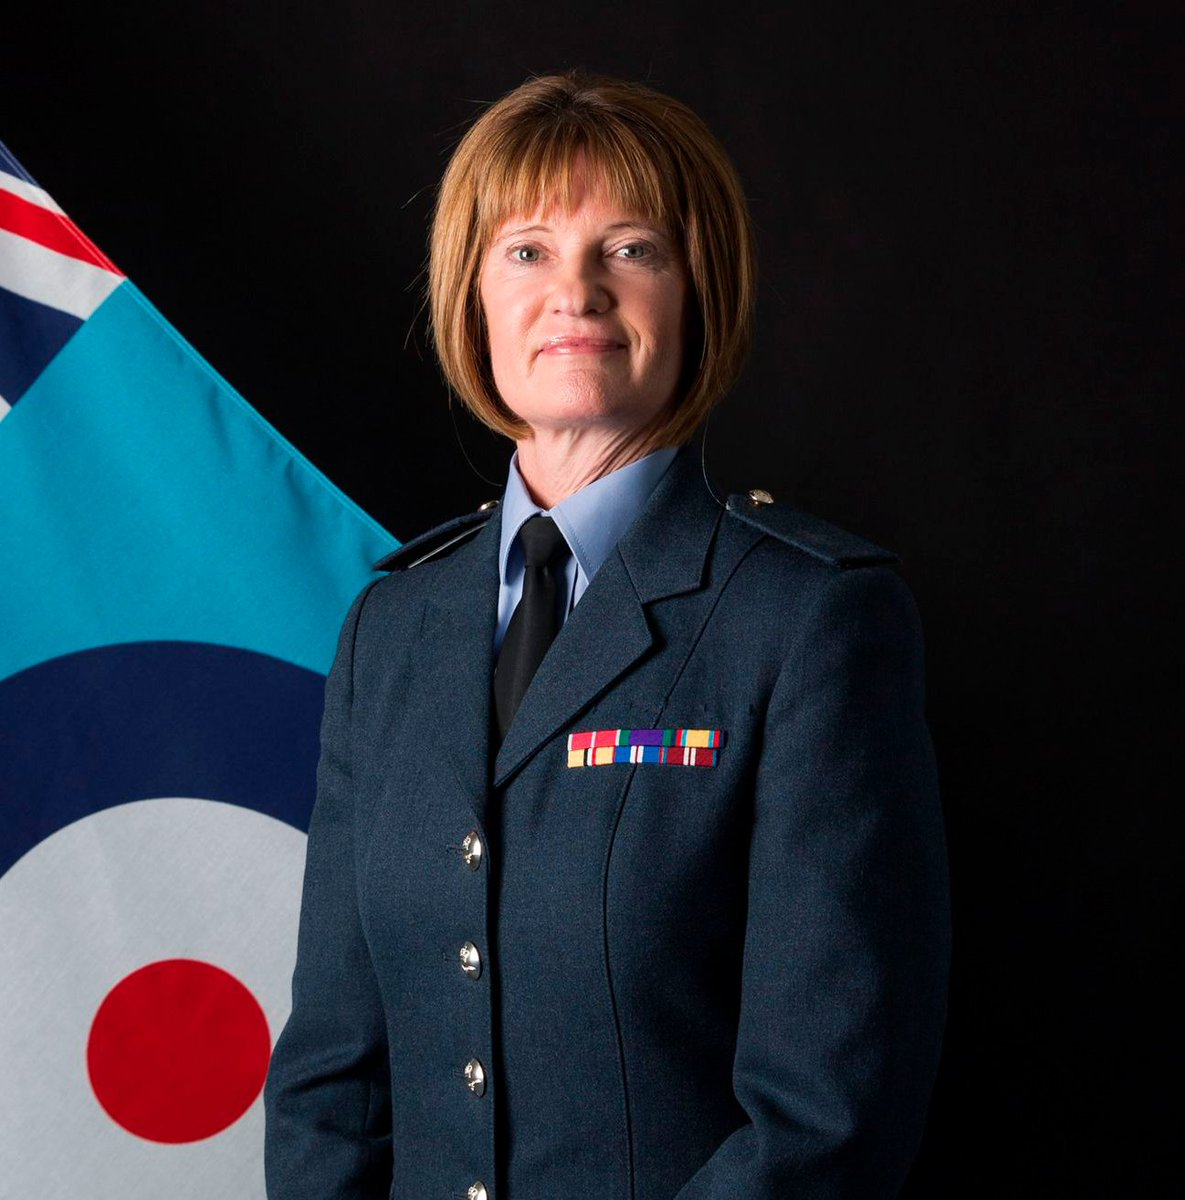 Today is #INWED19, a global campaign to highlight women in engineering & show the amazing career opportunities available in this exciting industry.  Air Marshal Sue Gray, recently spoke to http://WomenInSTEM.co.uk about being an engineer🔧 in the RAF.   http://bit.ly/RAFINWED19